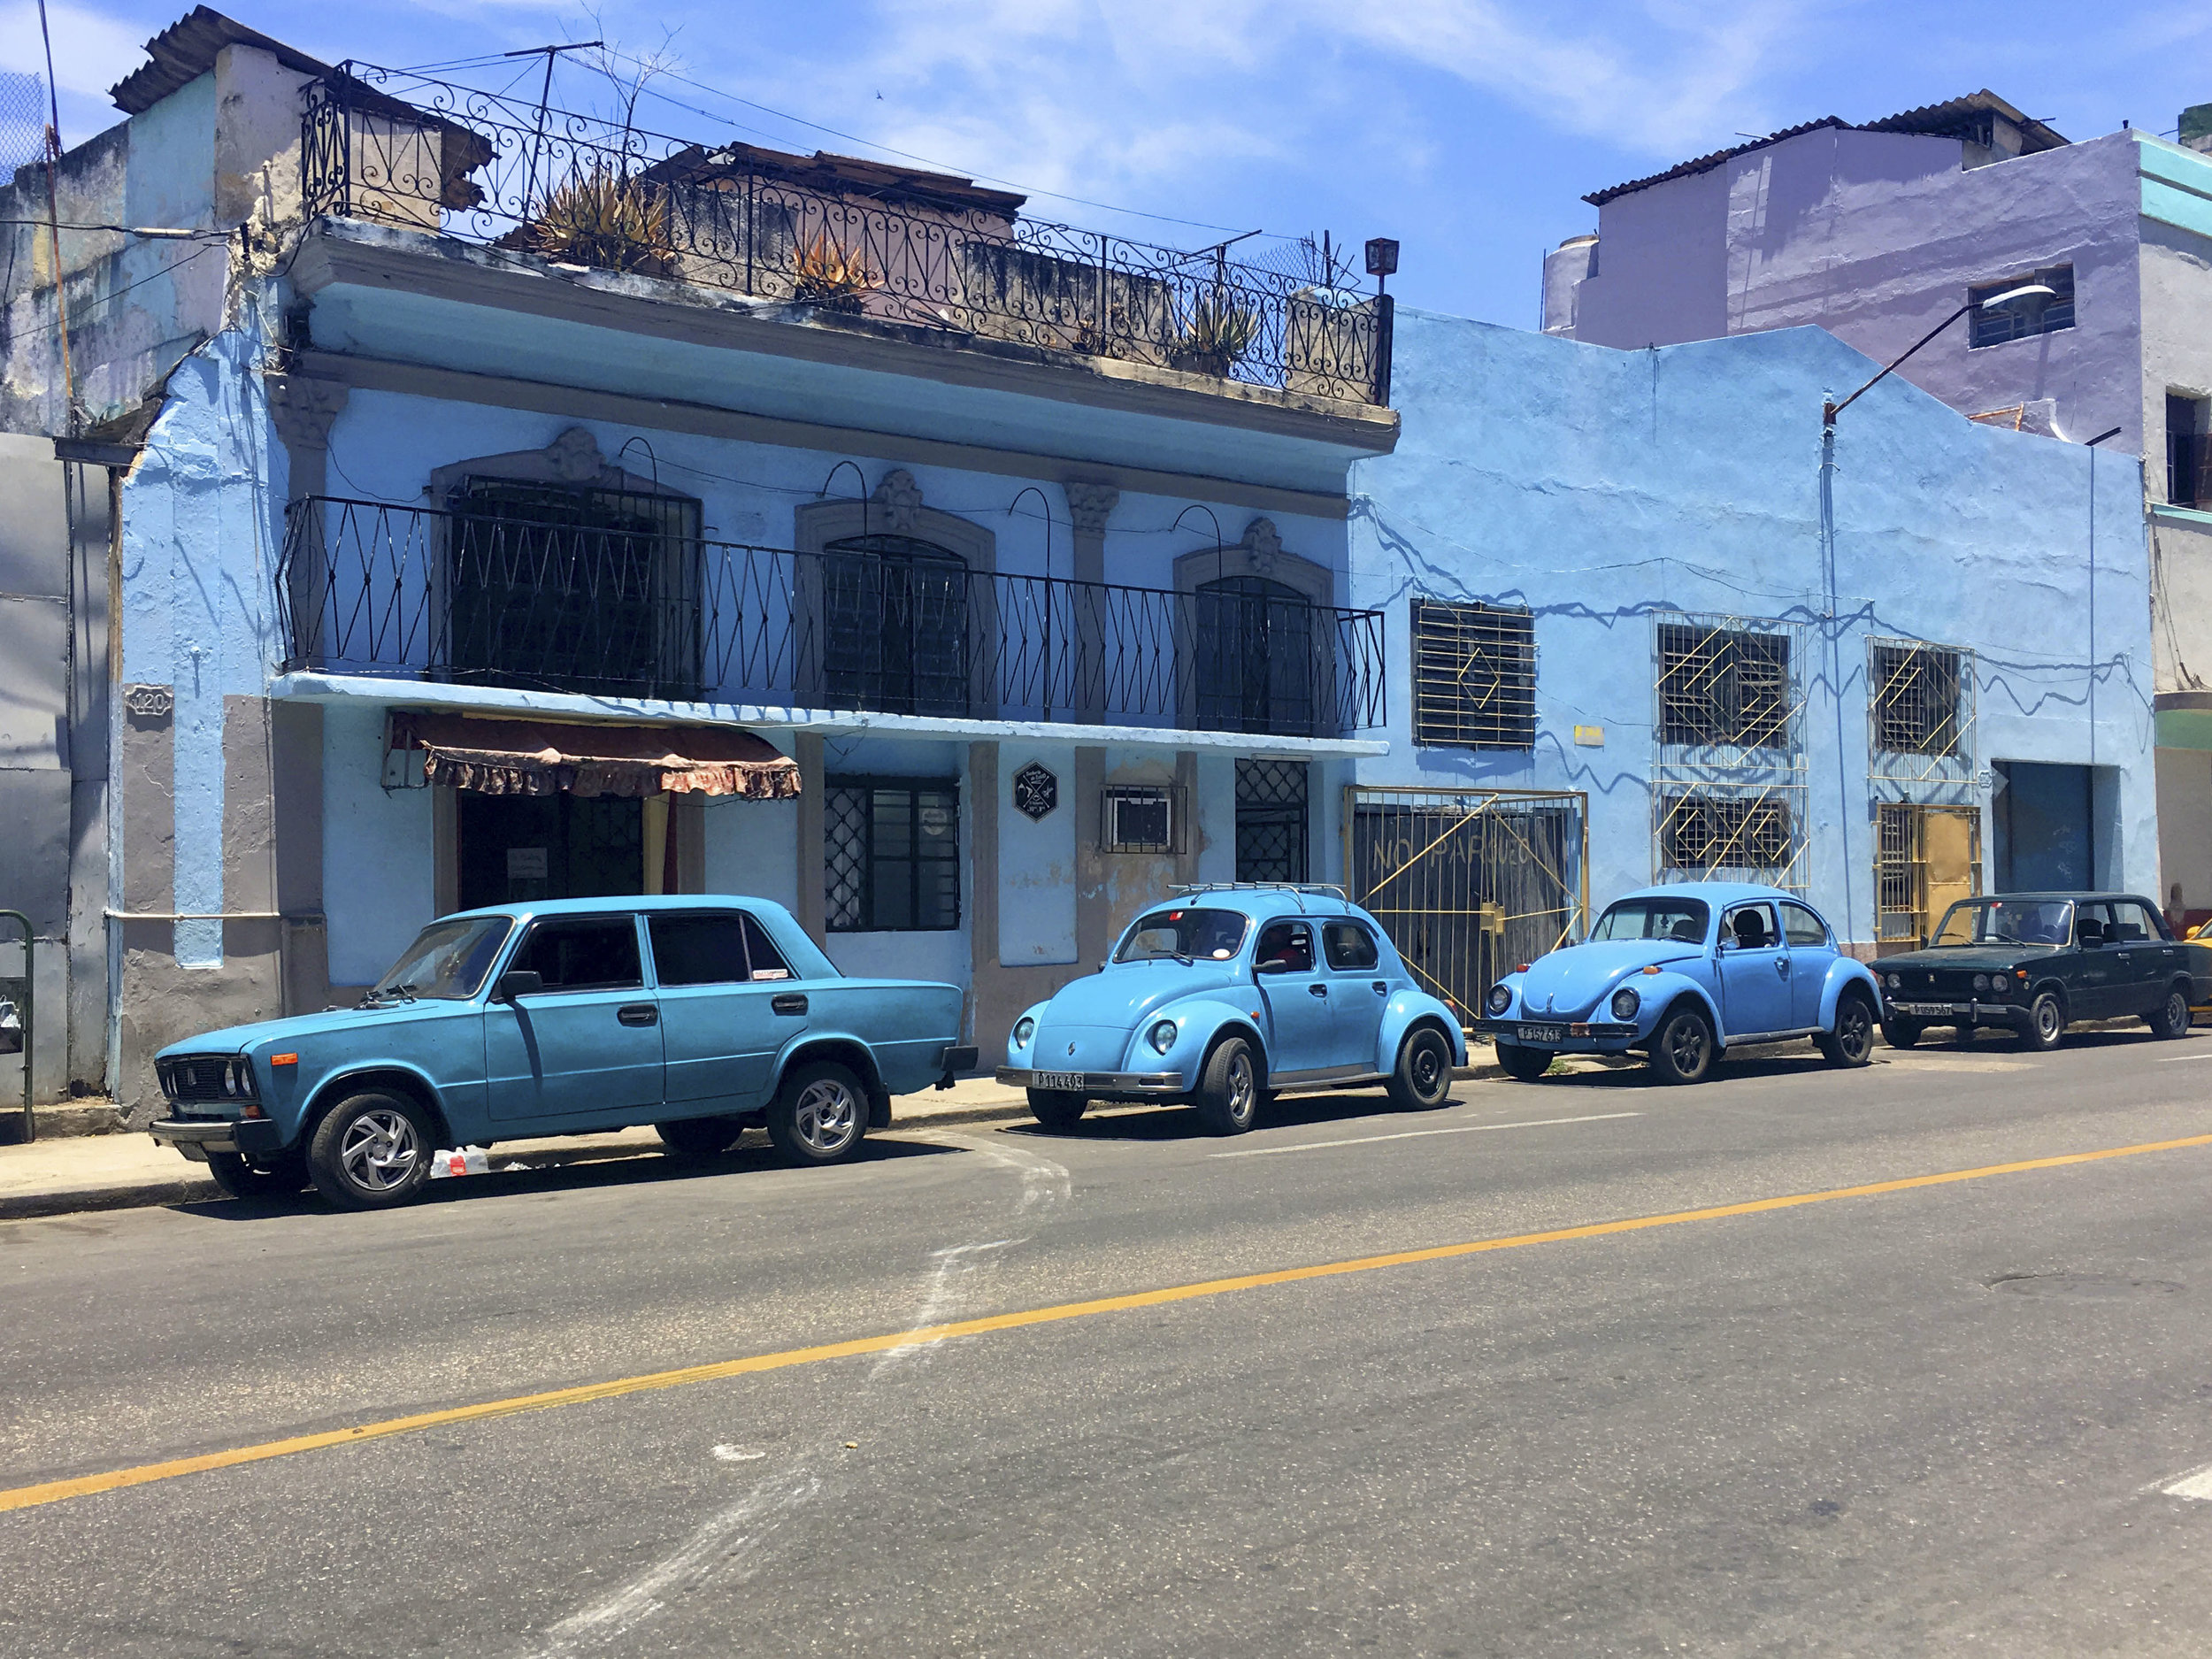 Cuba- Havana- Colorful vintage cars in the streets